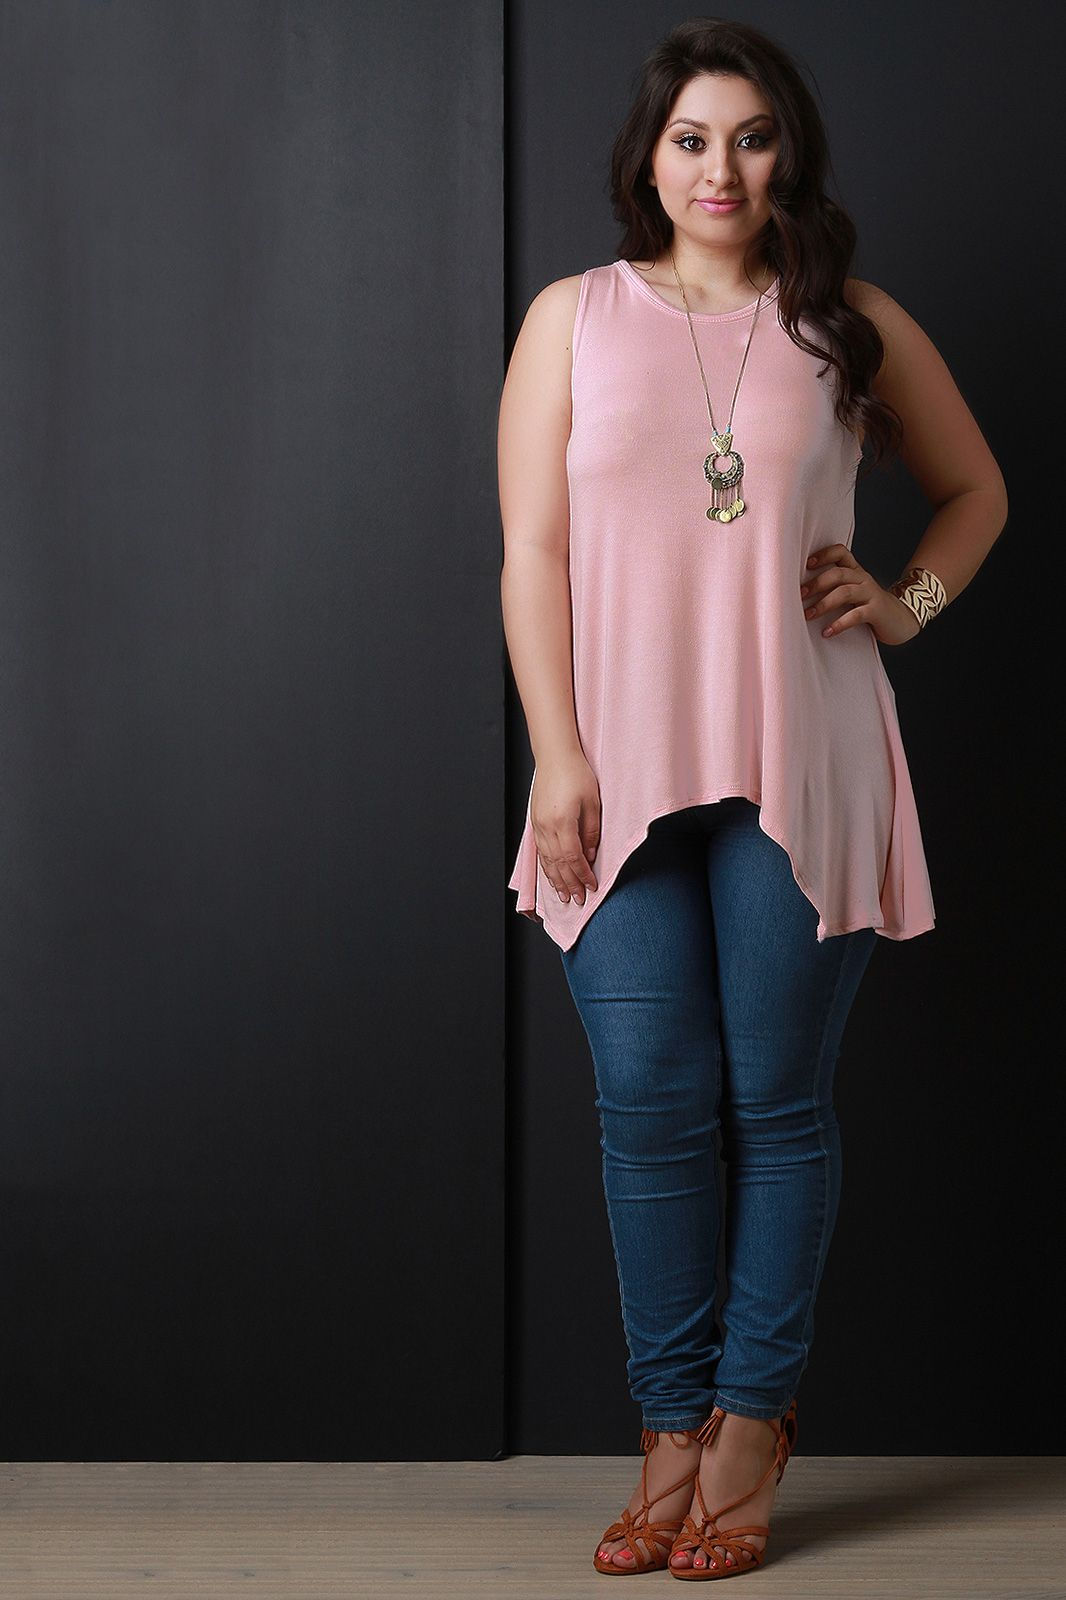 FREE SH & Easy Returns! Shop Sleeveless Sharkbite Tunic Top featuring a plus size tunic top with a soft fabrication, round neckline and an open back with a strappy accent.